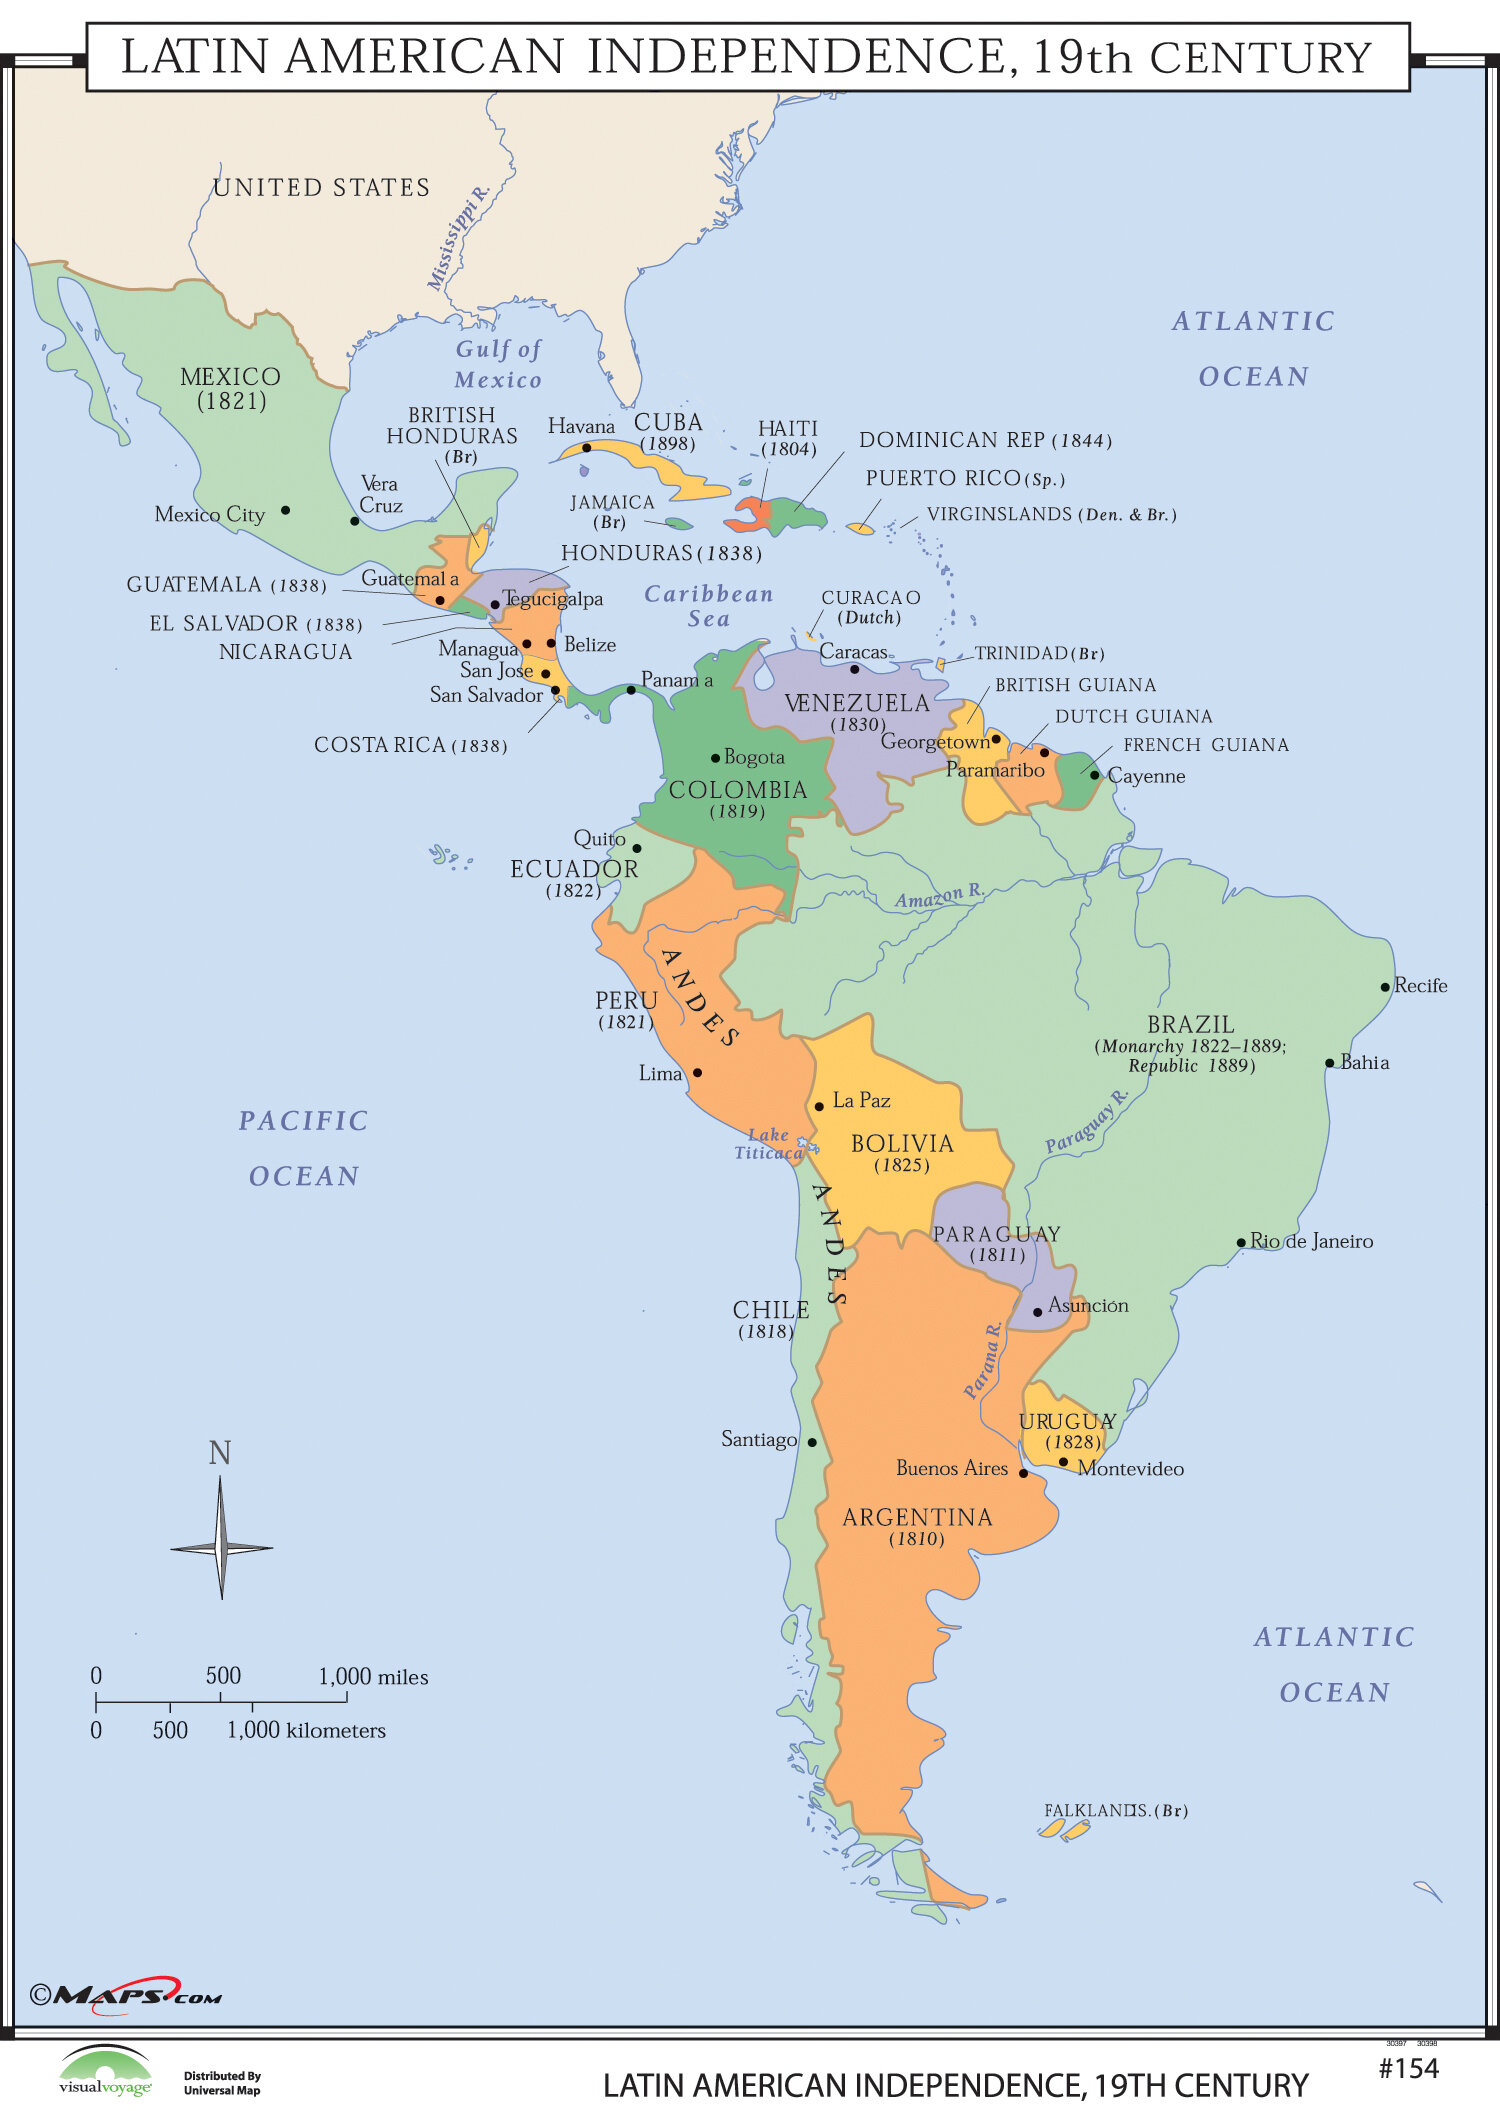 World History Wall Maps - Latin American Independence on china map, carribean map, emea map, indigenous peoples of the americas, south asia, haiti map, latin americans, africa map, spanish language, asia map, eastern europe, central america, latin language, costa rica, canada map, united states map, india map, north america, guyana map, dominican republic map, australia map, sub-saharan africa, north africa, southeast asia, spain map, mexico map, panama map, guatemala map, western europe, latin american culture, europe map, chile map, south america, brazil map, east asia, hispanic and latino americans, western hemisphere map, united states of america,